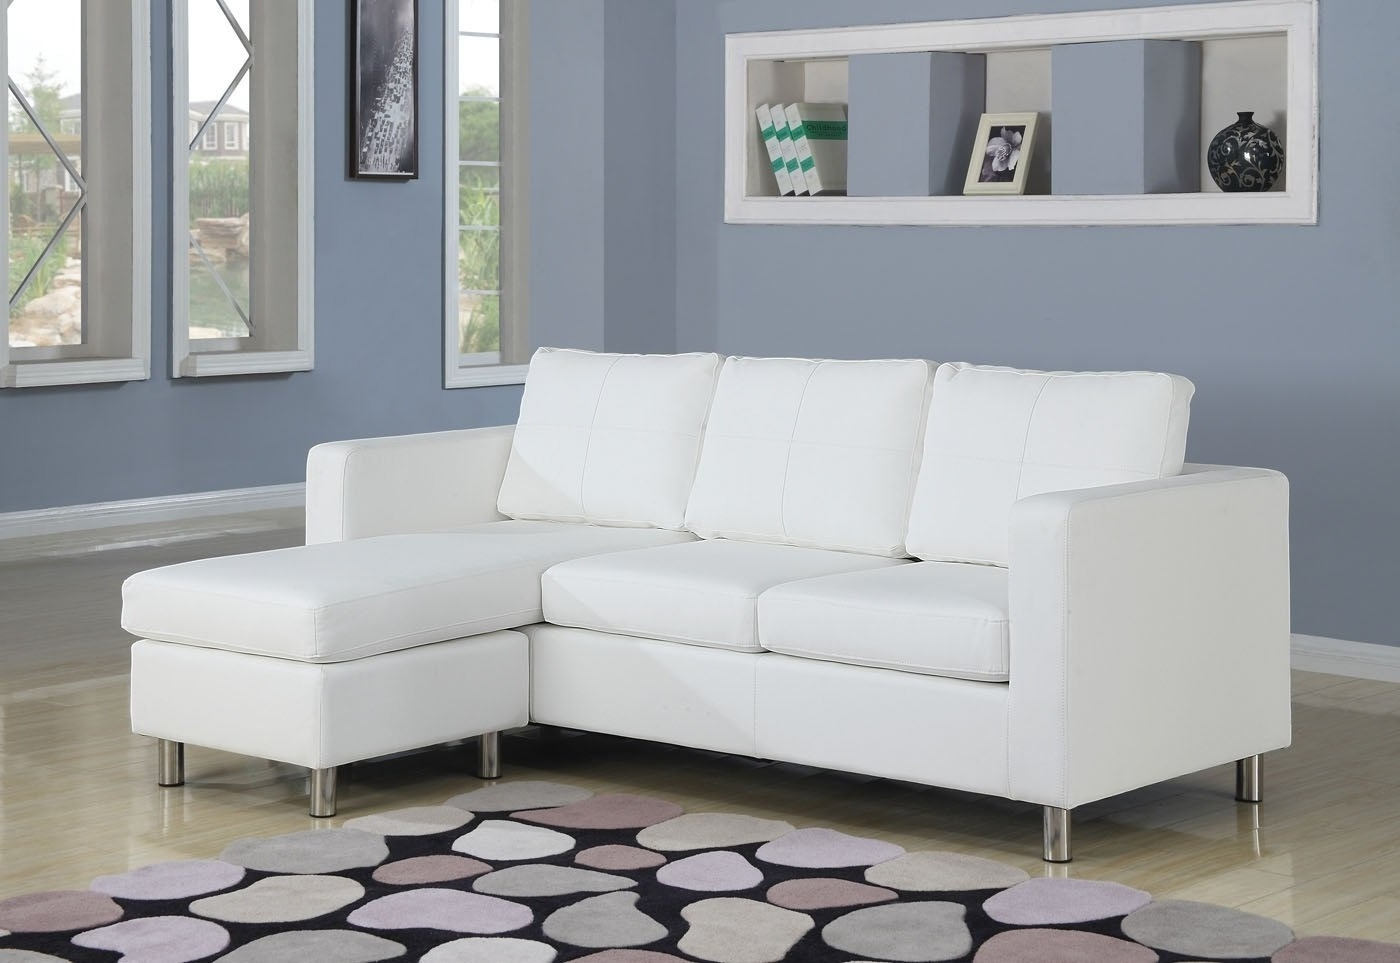 Small Sofas And Chairs Throughout Well Known Sofa : U Shaped Sofa Ikea Darcy Sofa Ashley Furniture Small (View 13 of 15)